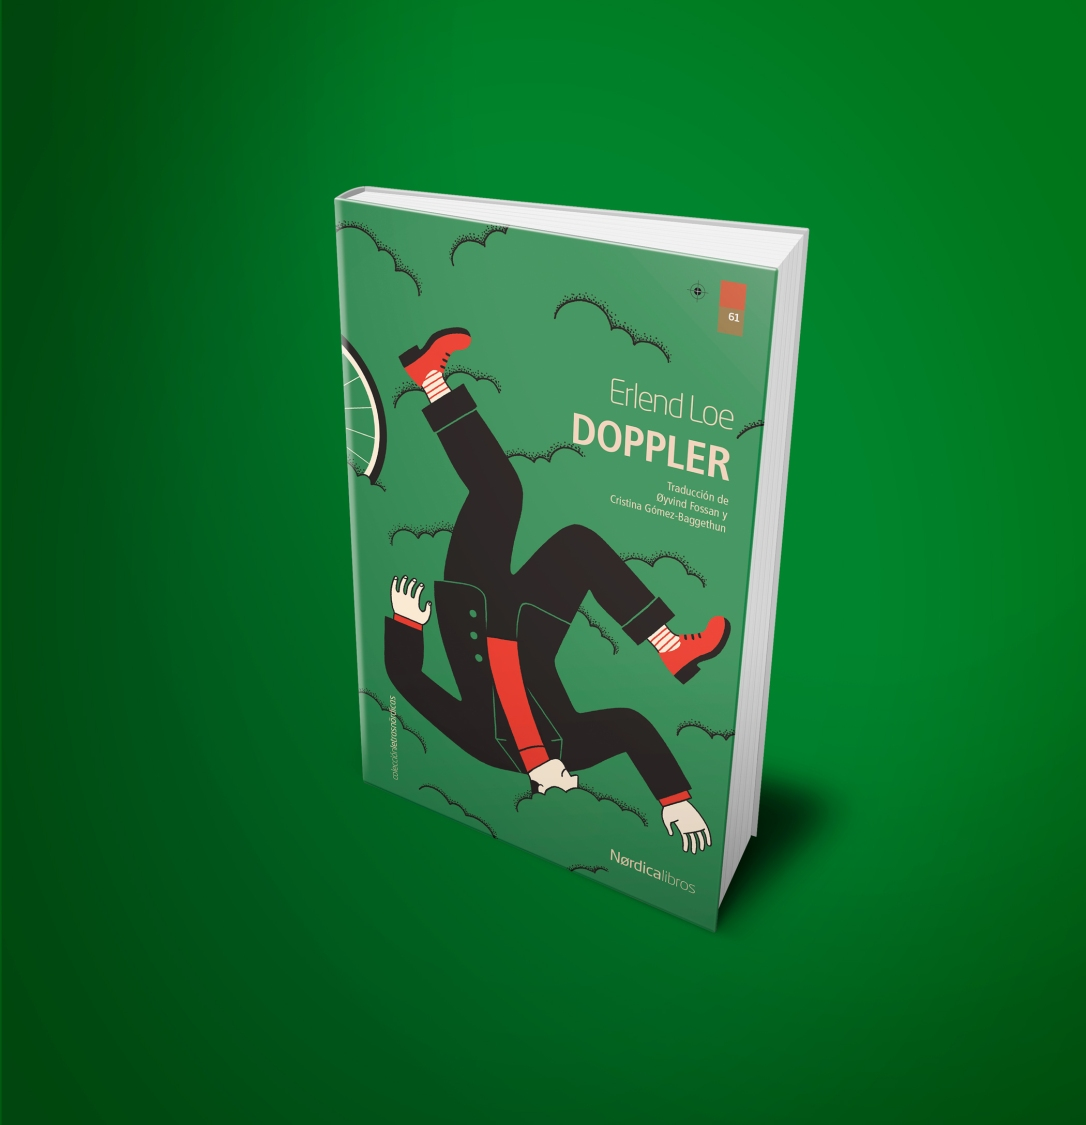 web_Doppler_libro